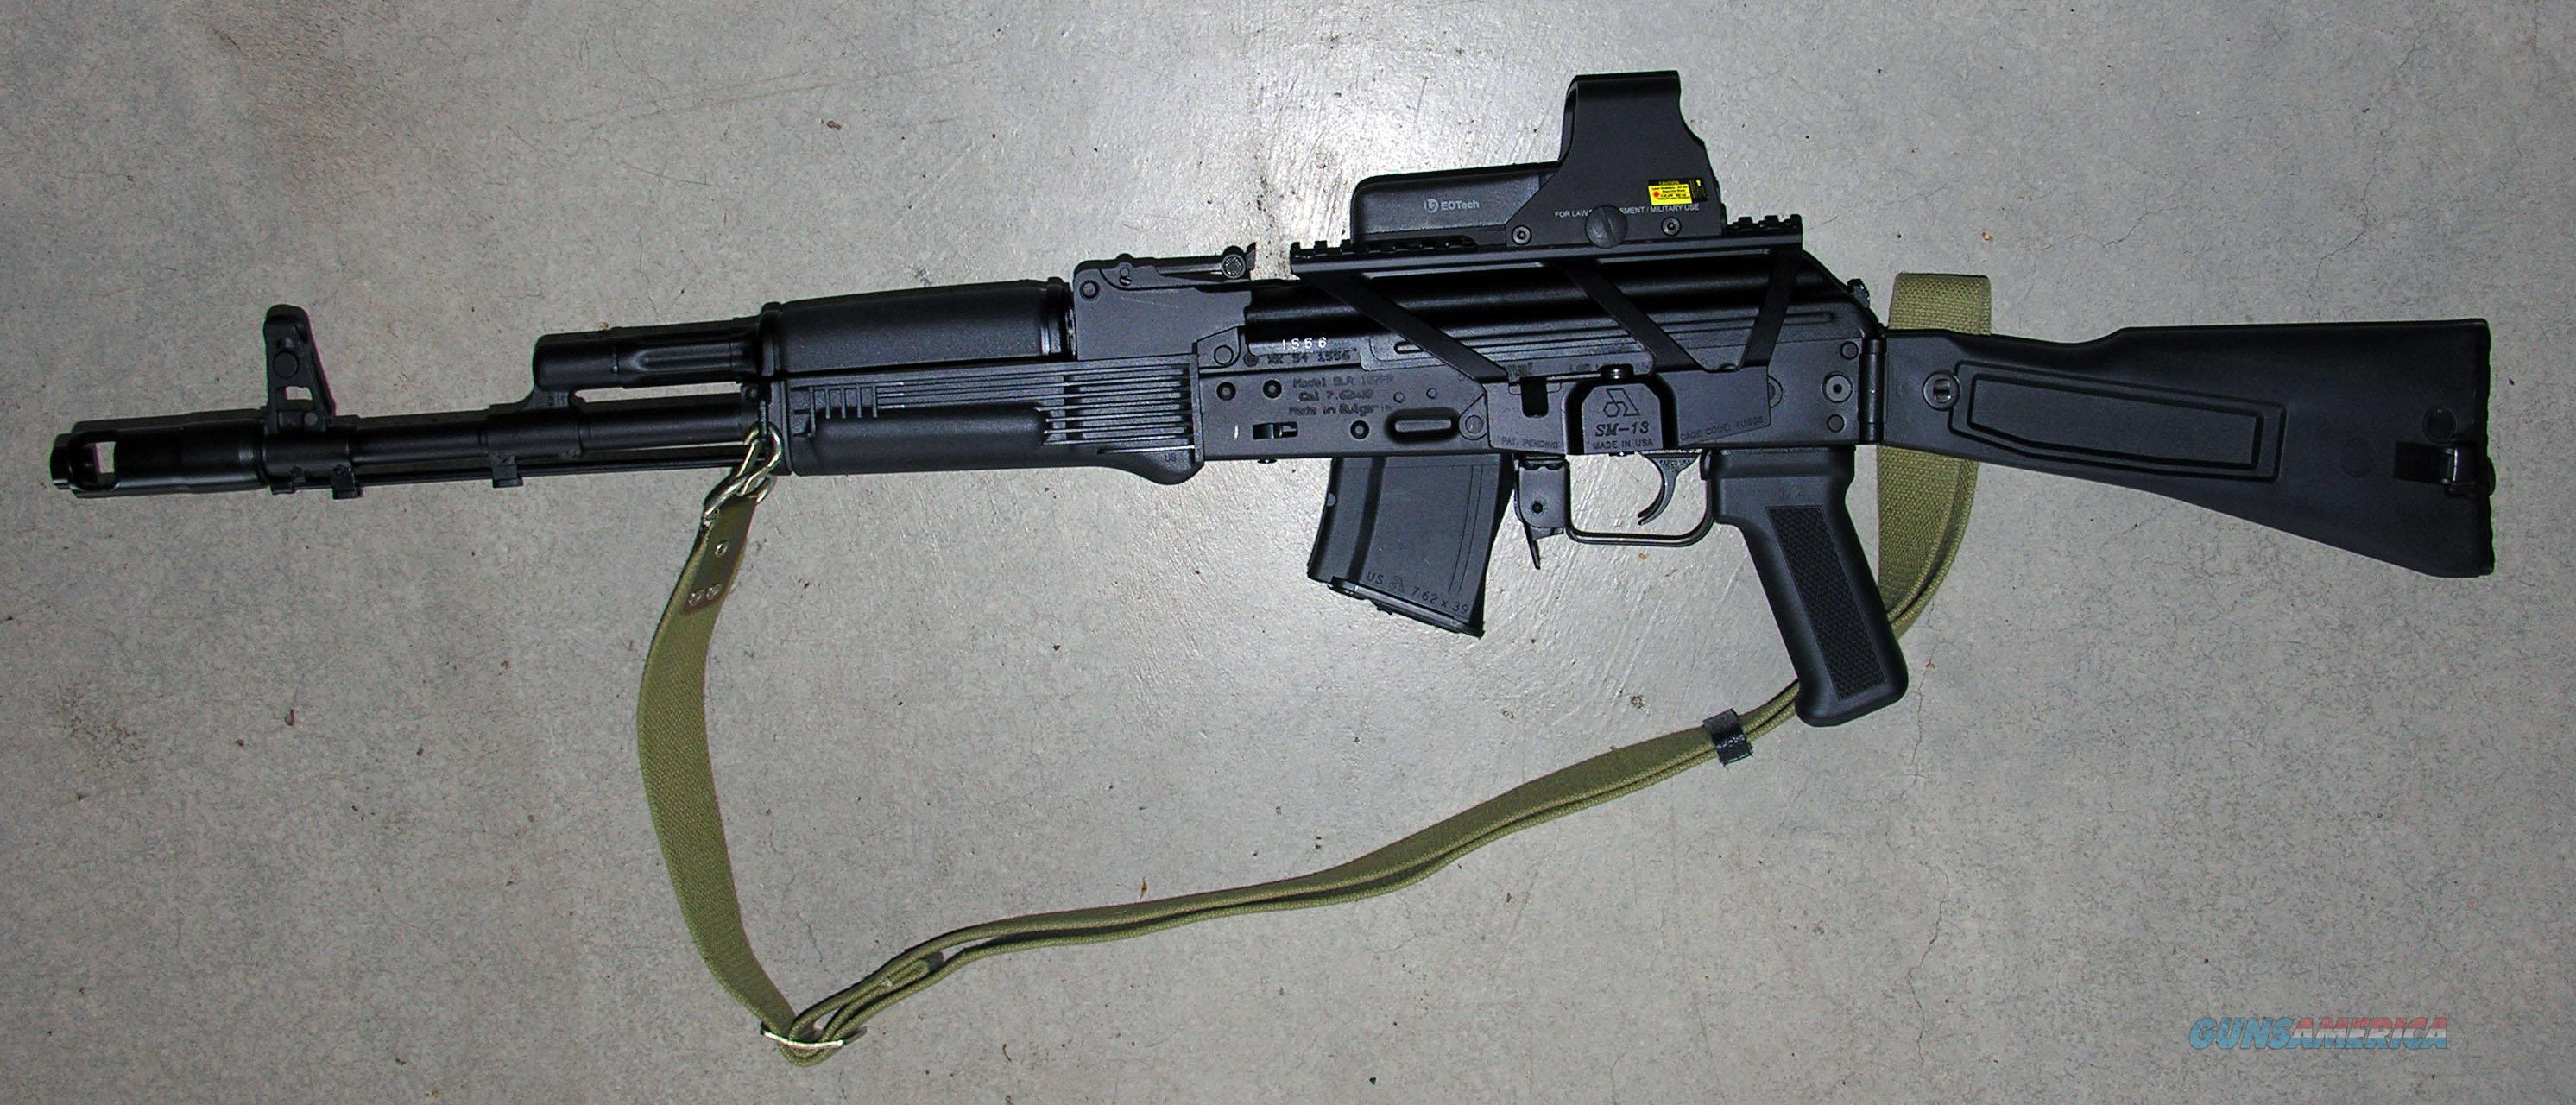 ARSENAL AK-47 SLR 107-31 FOLDING STOCK, 7.62X39, EOTECH SIGHT - AK NEVER FIRED; MANY EXTRAS: 1000 ROUNDS AMMO - ALL NEW; NEW DOUBLE STAGE TRIGGER GROUP; SM-13 mount; 120 ROUND MAG POUCH & MAGS; TRIGGER RETAINING PLATE; CARRING CASE.  Guns > Rifles > AK-47 Rifles (and copies) > Folding Stock